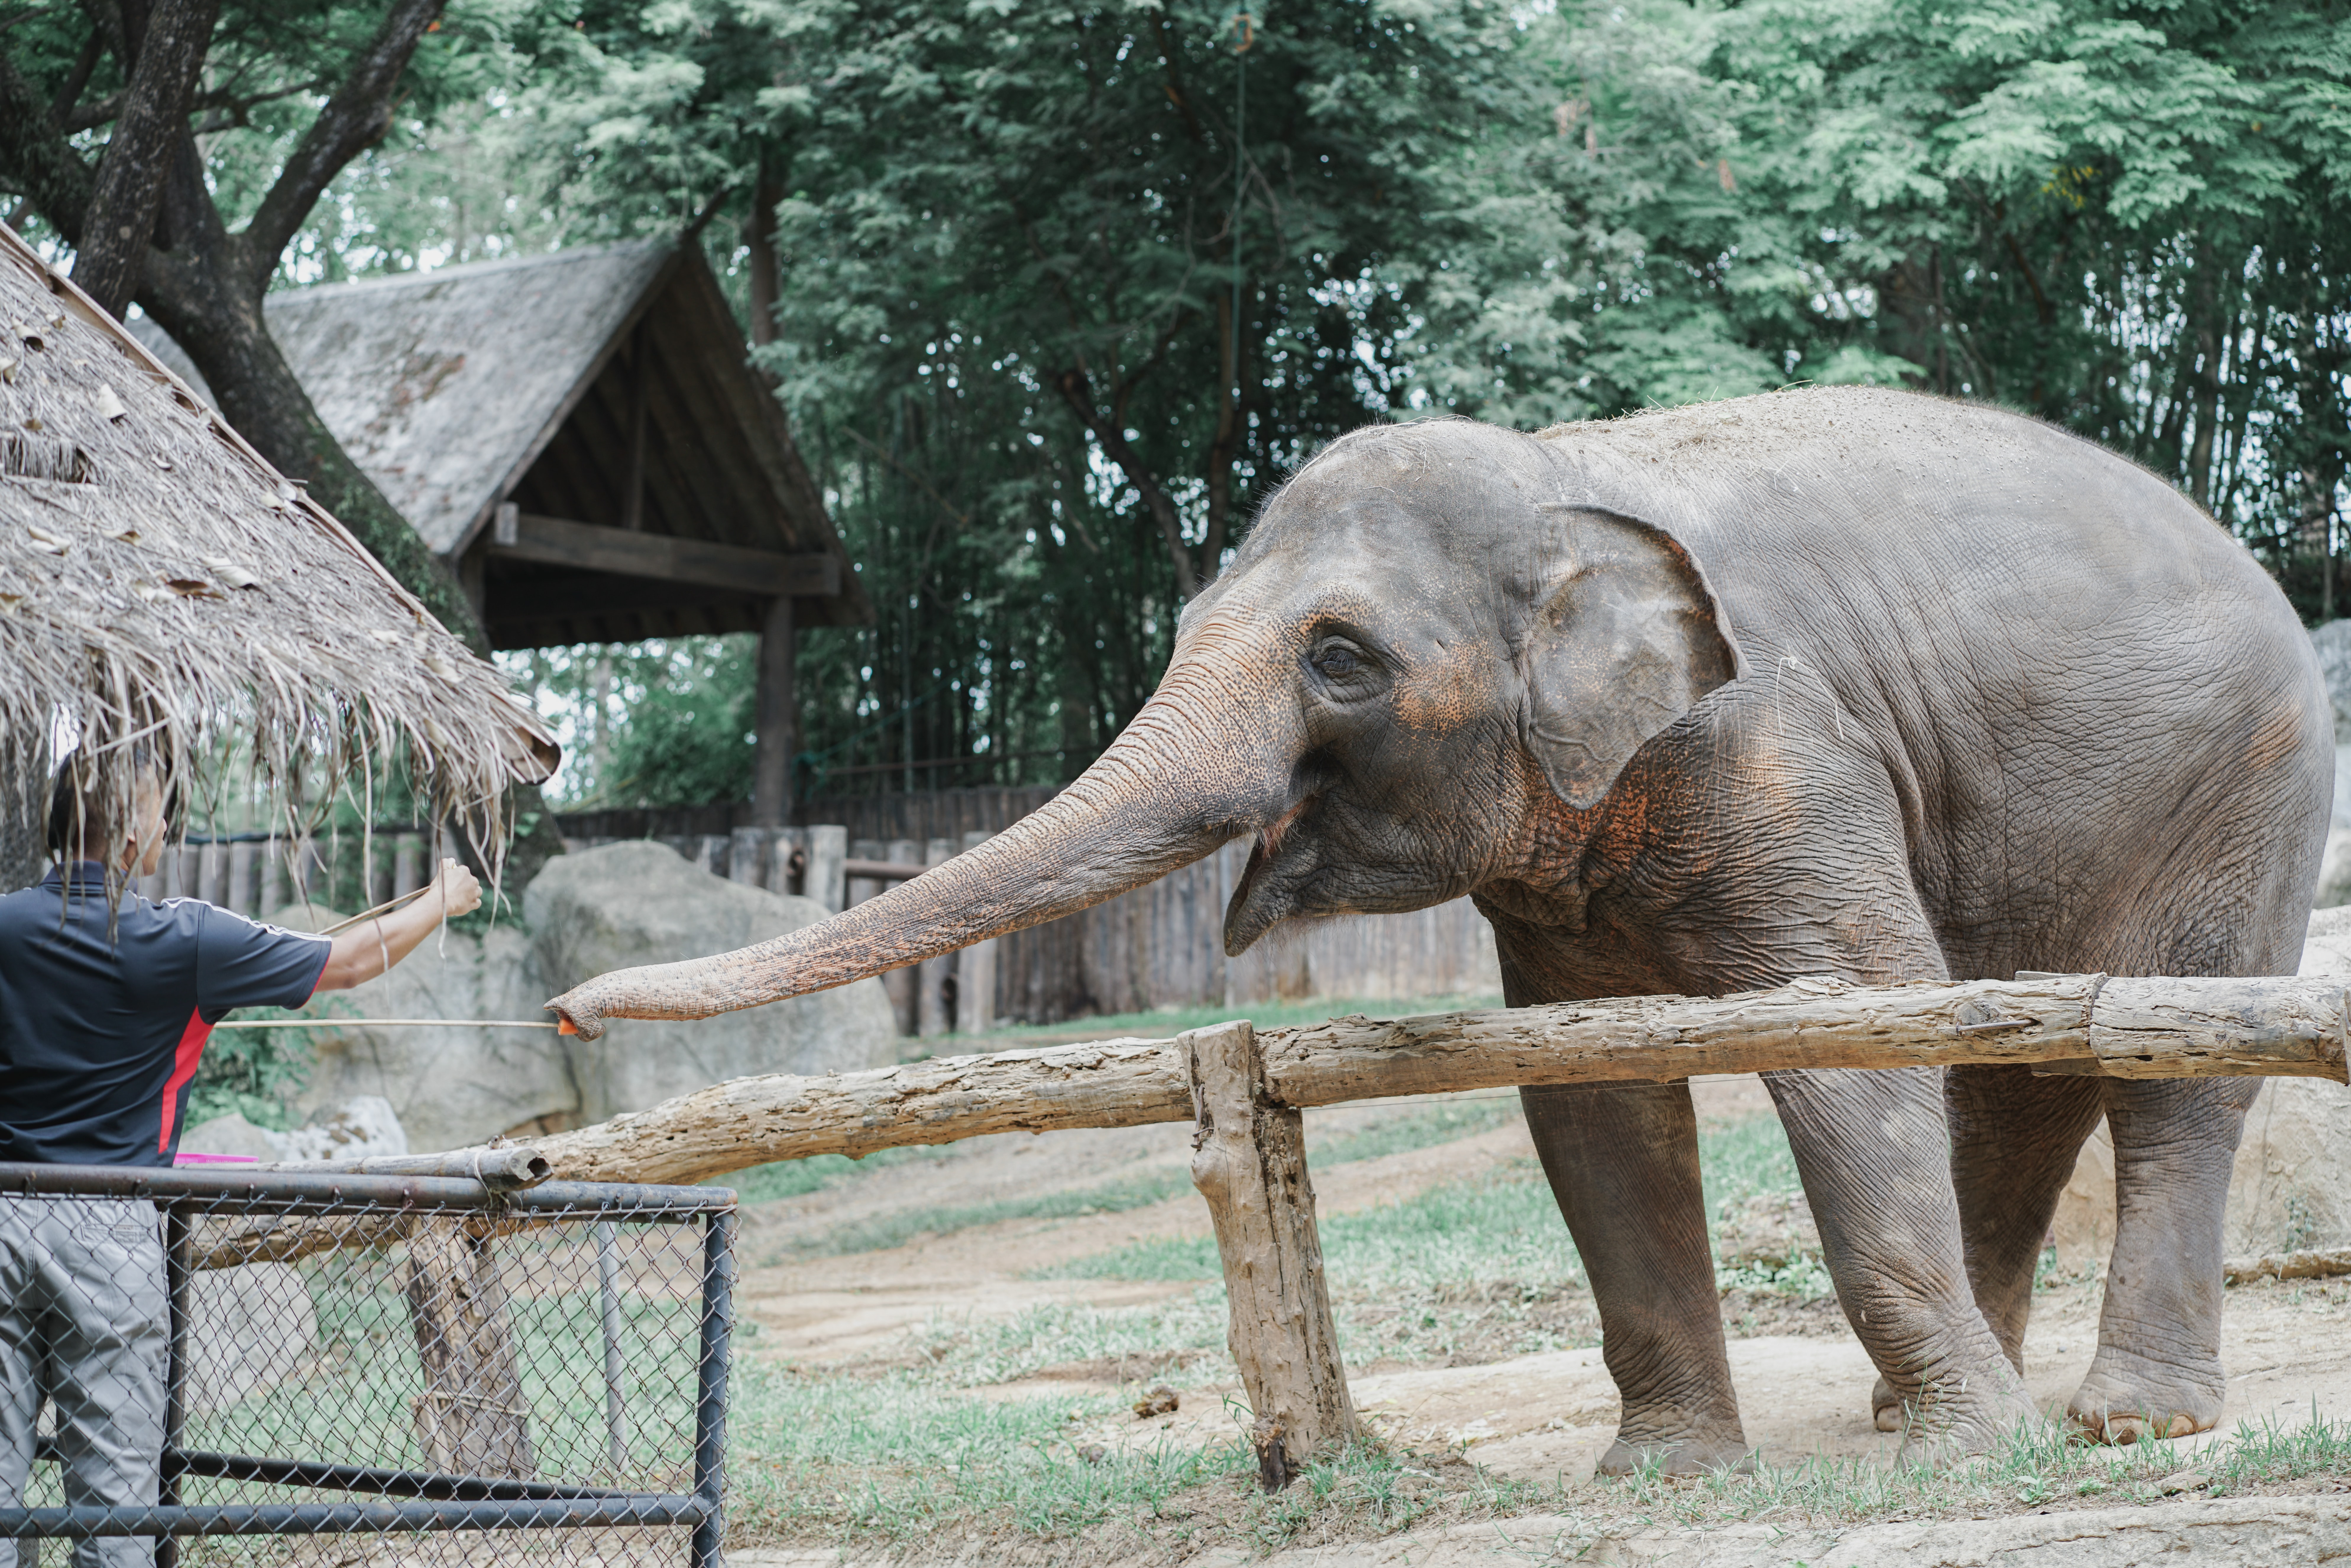 volunteer with elephants while on sabbatical